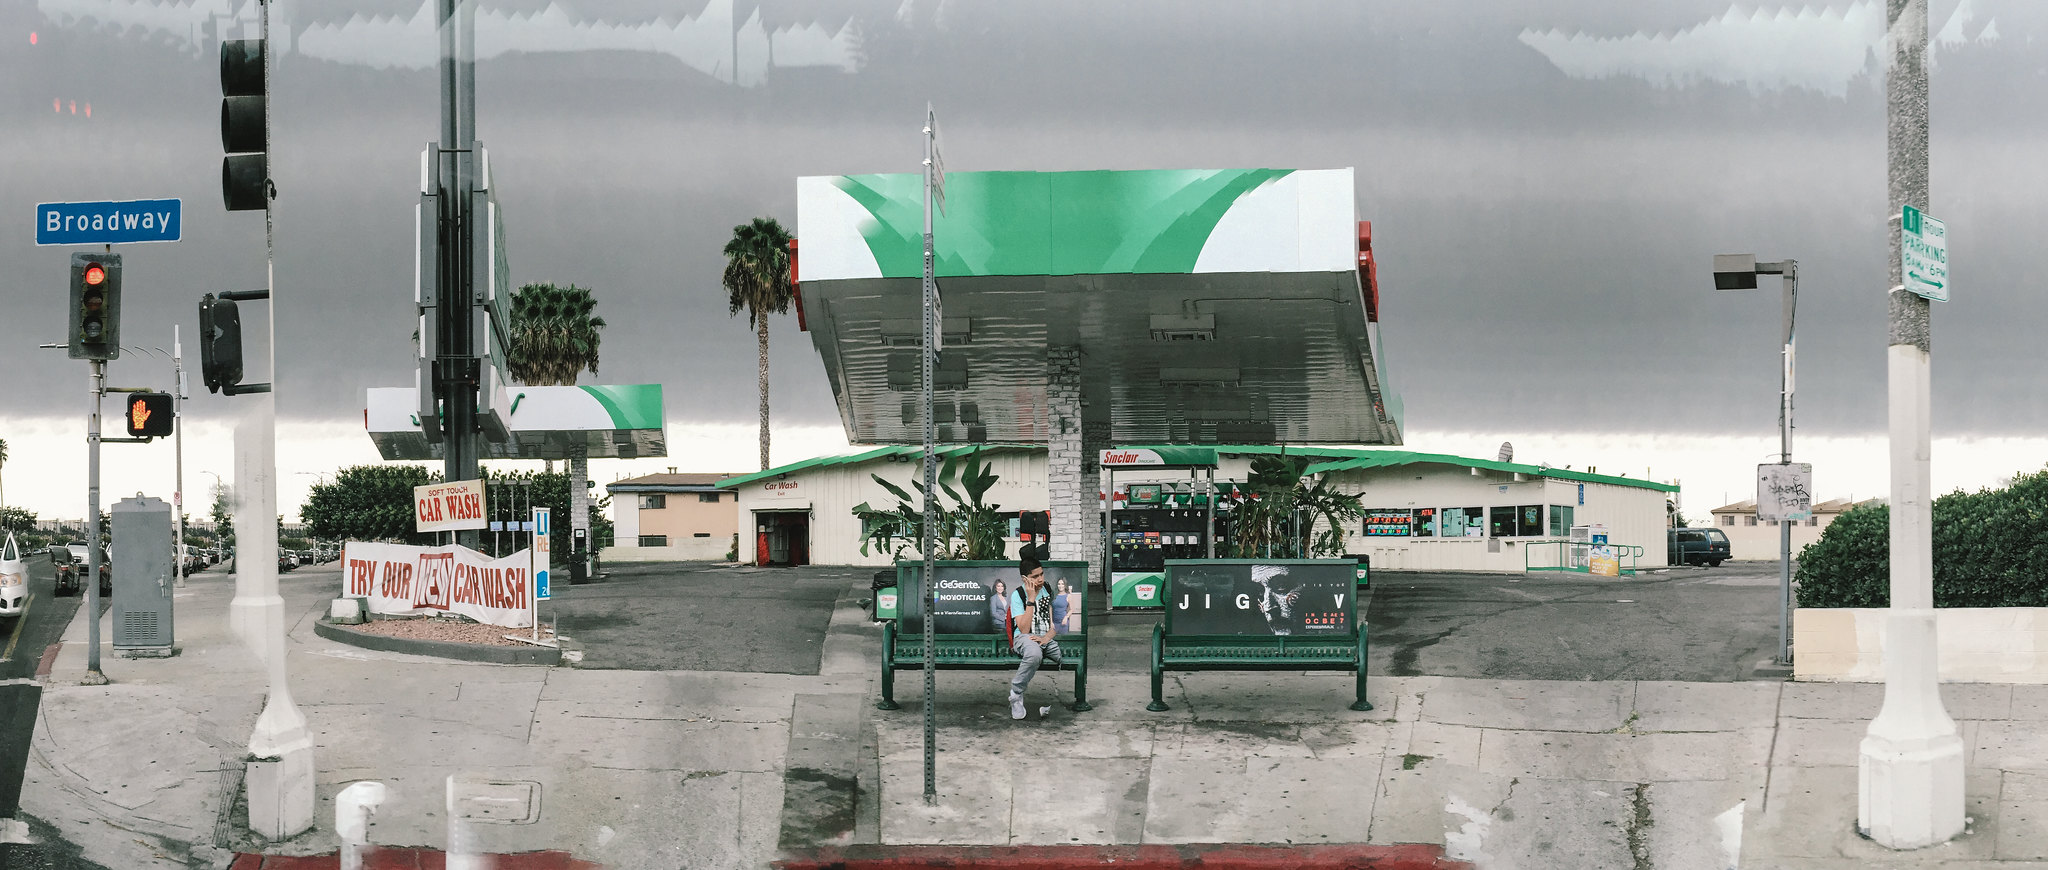 Los Angeles, CA   by Mike Murphy -